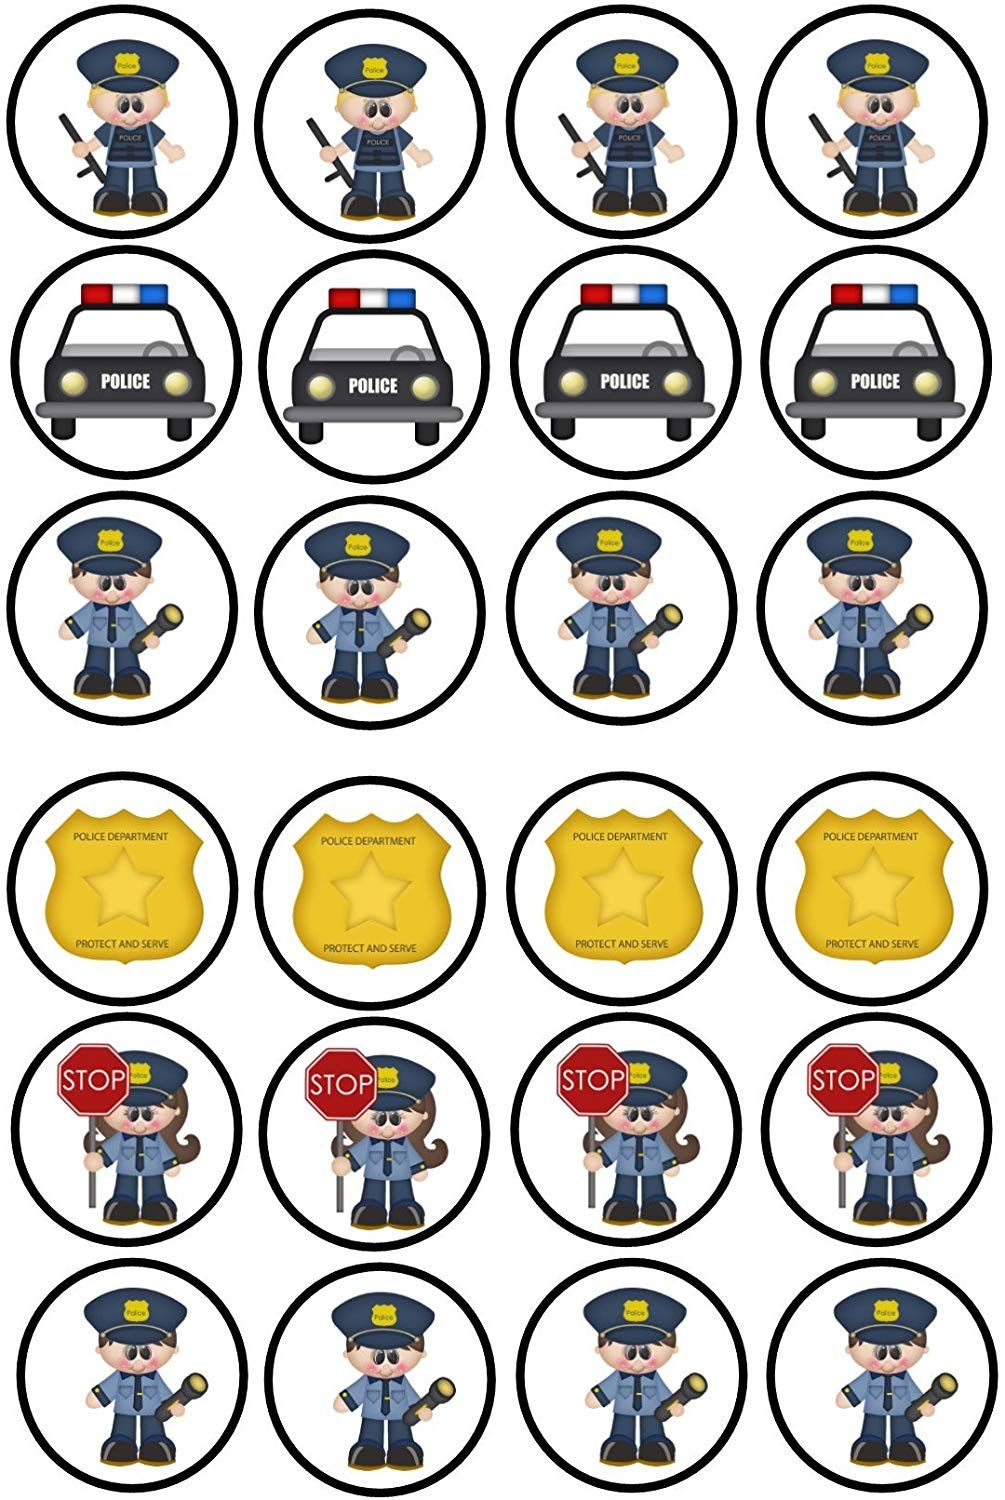 24 Police Policeman Car Cartoon Mix Themed Cupcakes Edible Cake Toppers 4cm On Wafer Rice Paper Amazon Co U Police Party Police Birthday Police Birthday Party